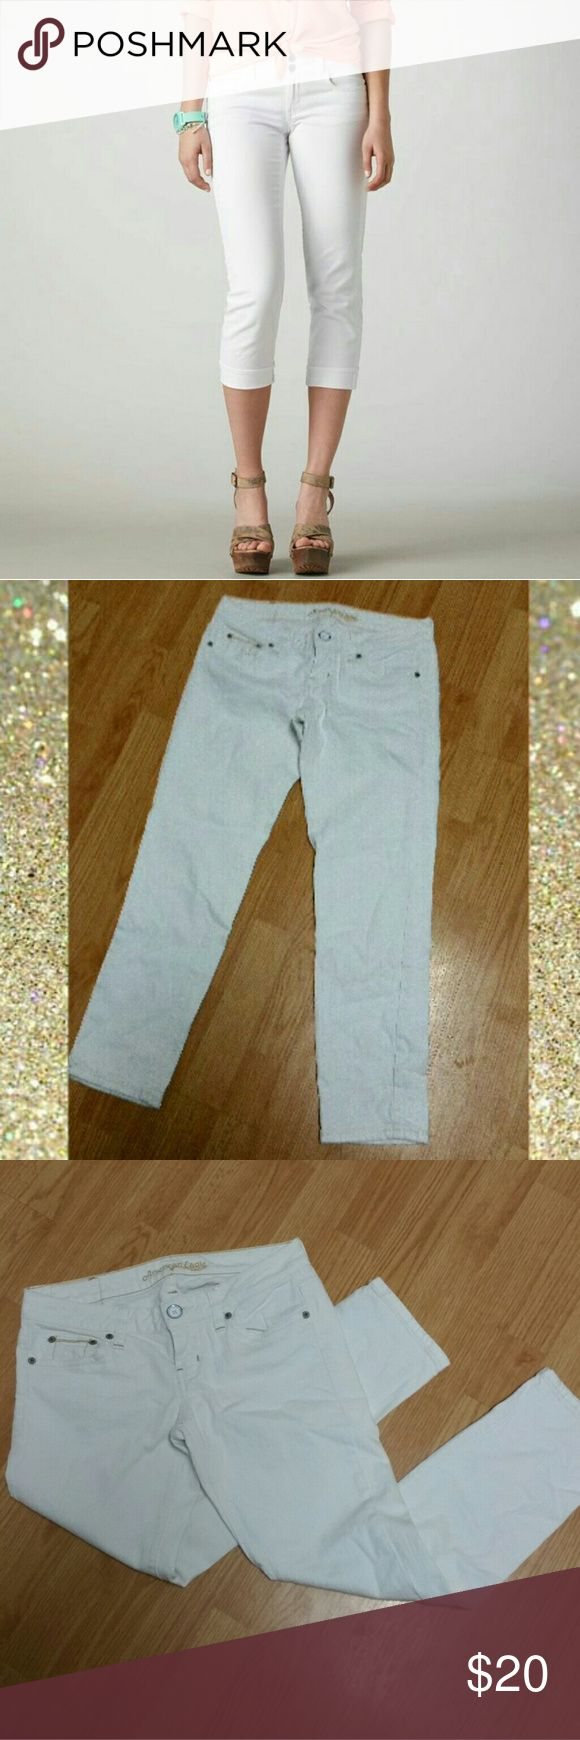 AE Artist Short/Crop Denim, super low rise, true to size without alot of stretch Artist Cut pant. Says regular but runs at crop length 25-26inc inseam. Only worn once but I'm too petite for these crops. Great condition!!! American Eagle Outfitters Jeans Ankle & Cropped